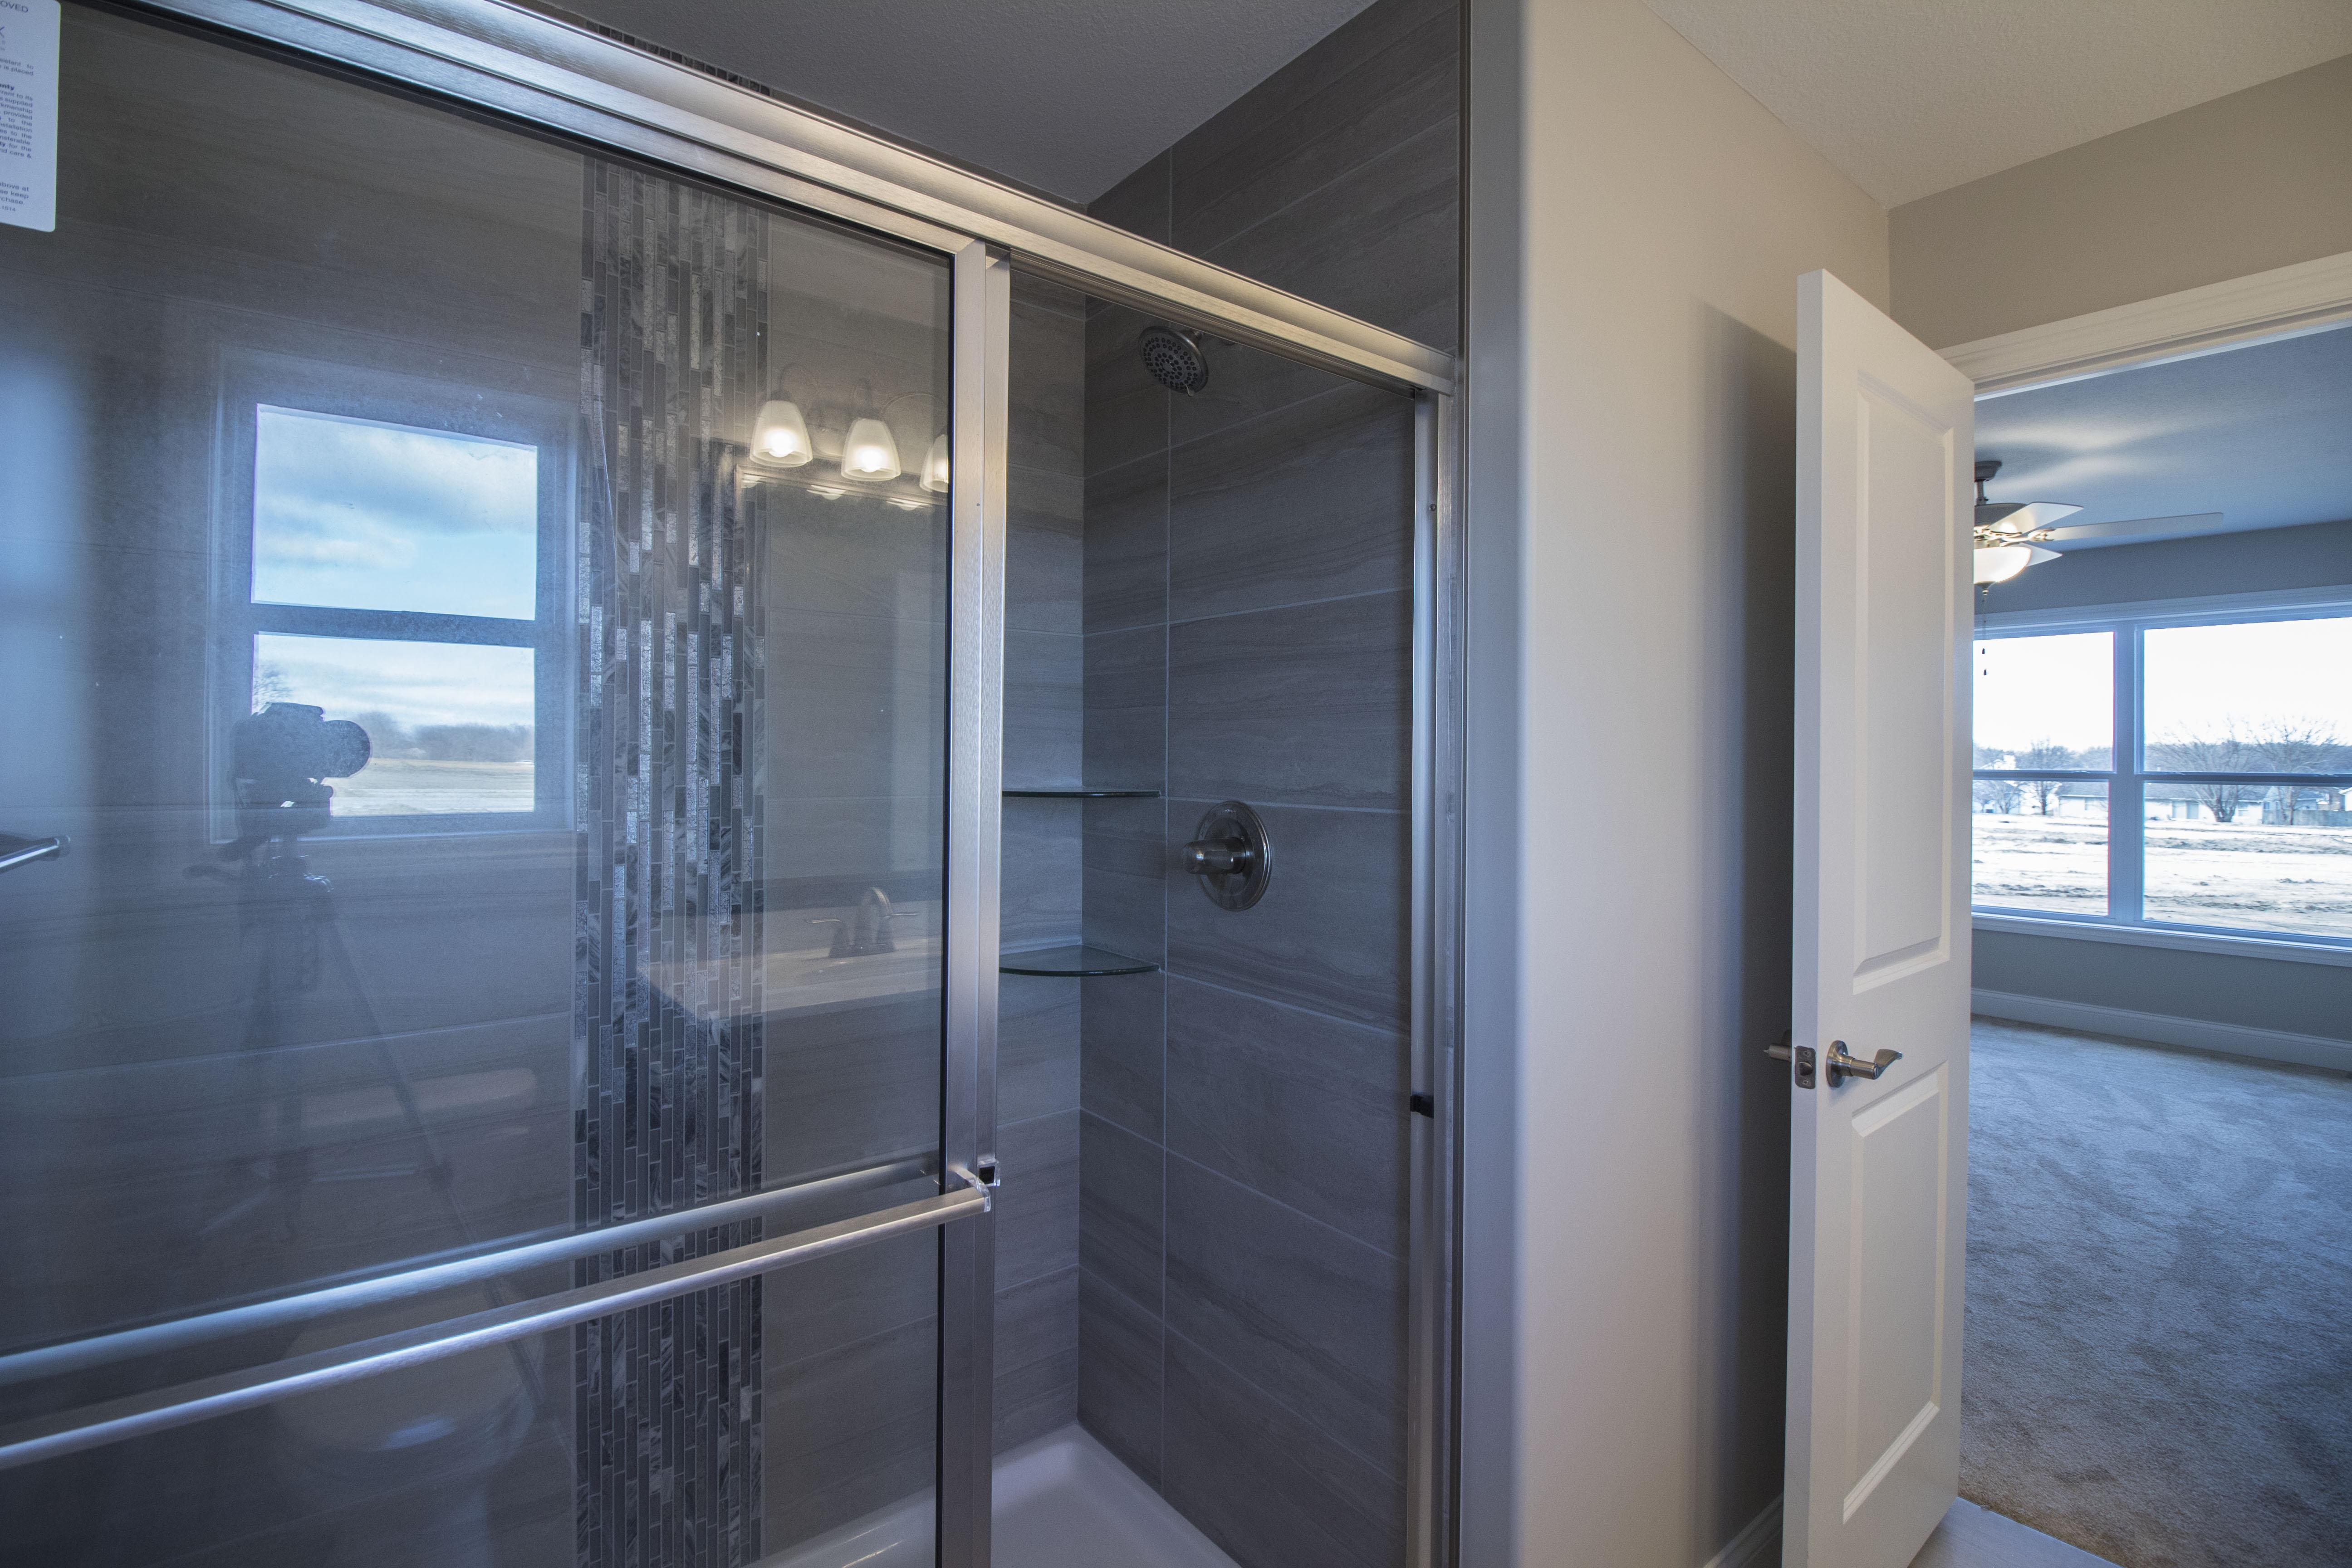 Bathroom featured in the Douglas II By Unlimited Homes in Champaign-Urbana, IL